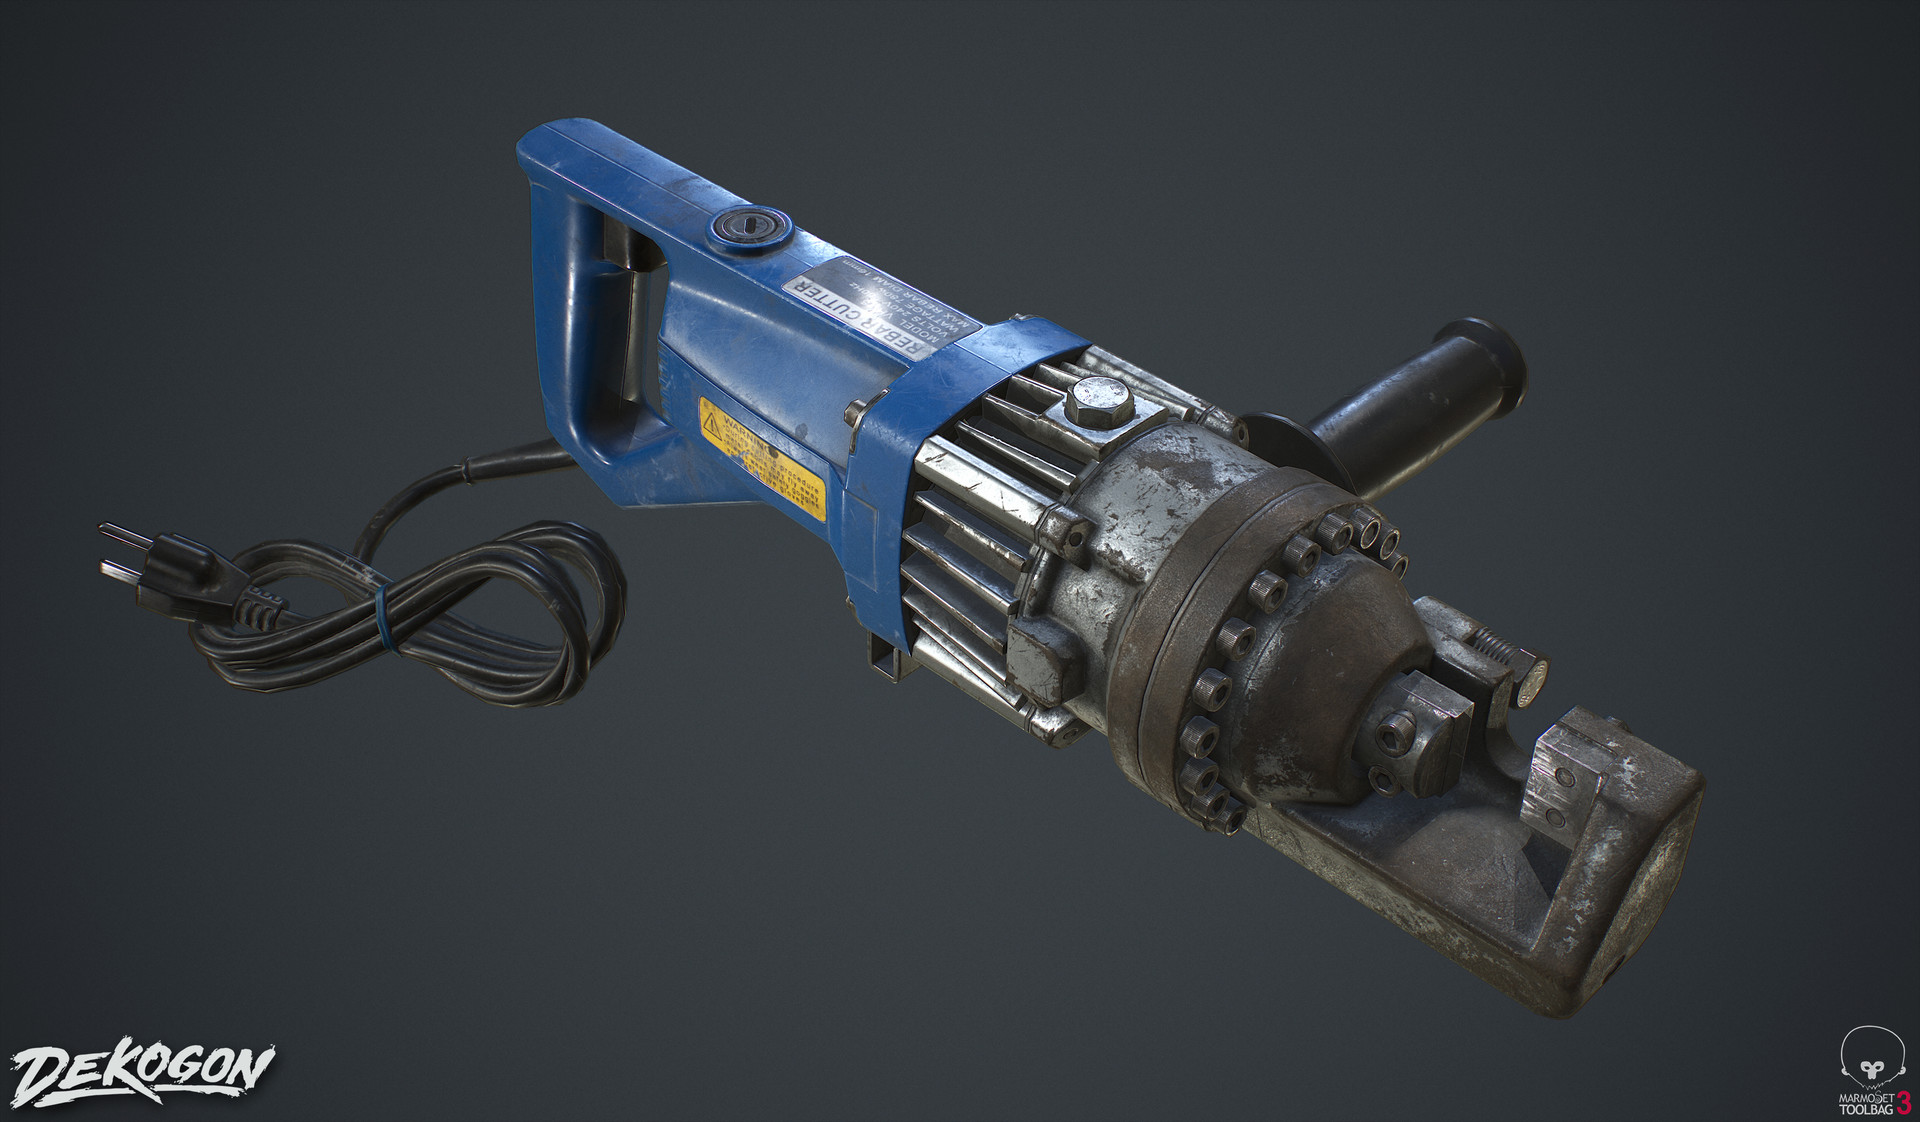 Rebar Cutter by Kyle - KR